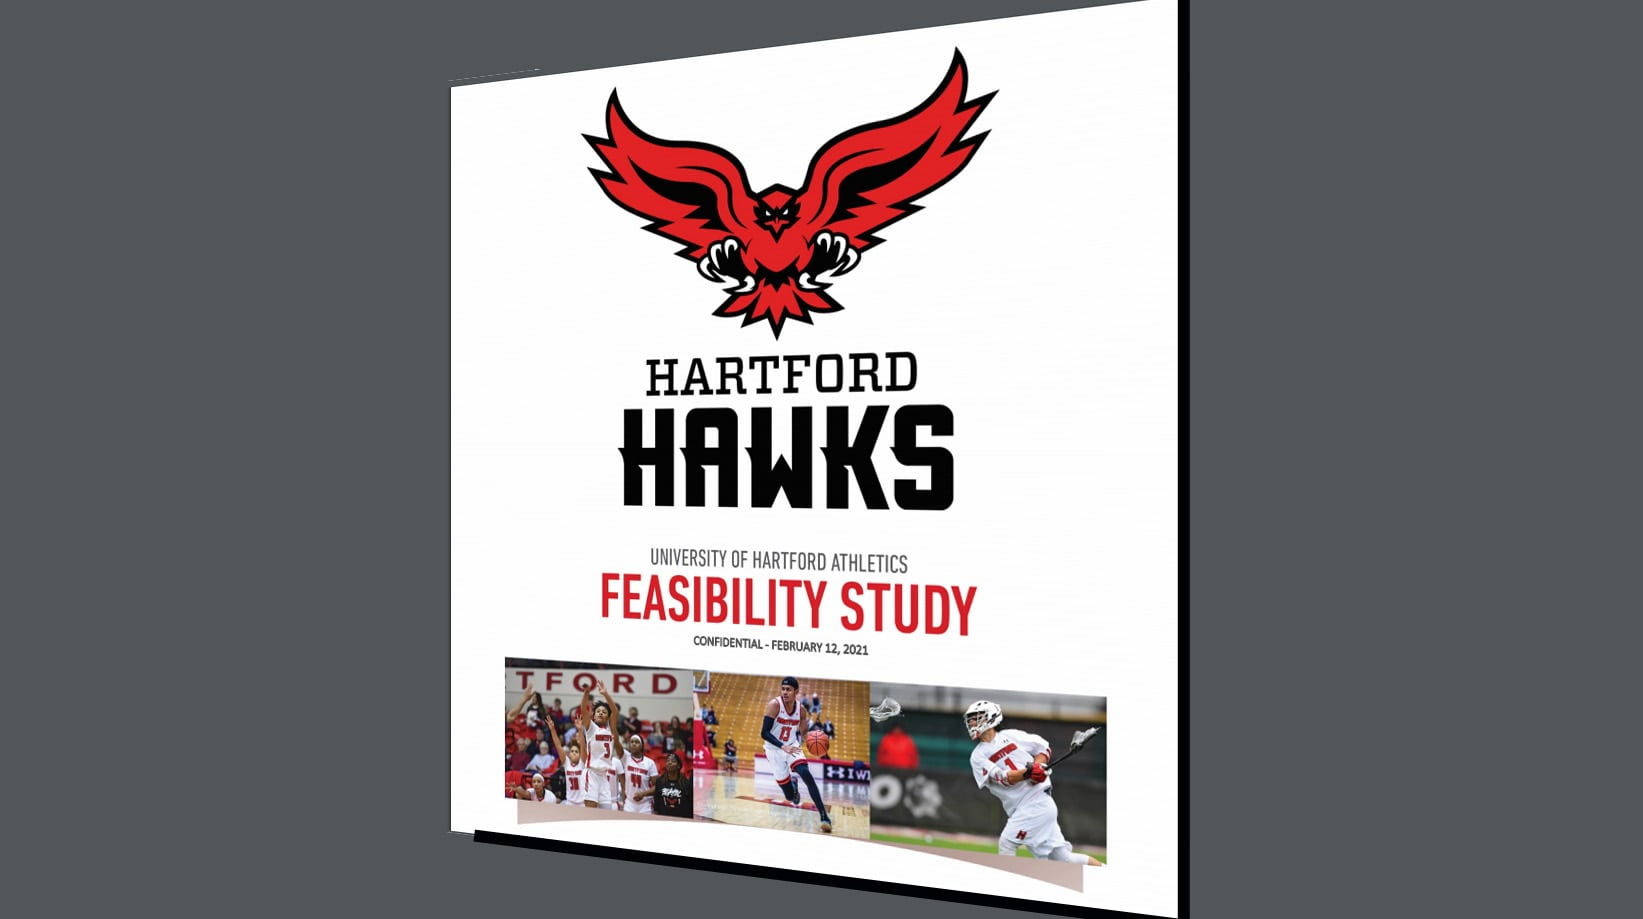 From UHart faculty: All Hawks deserve our support